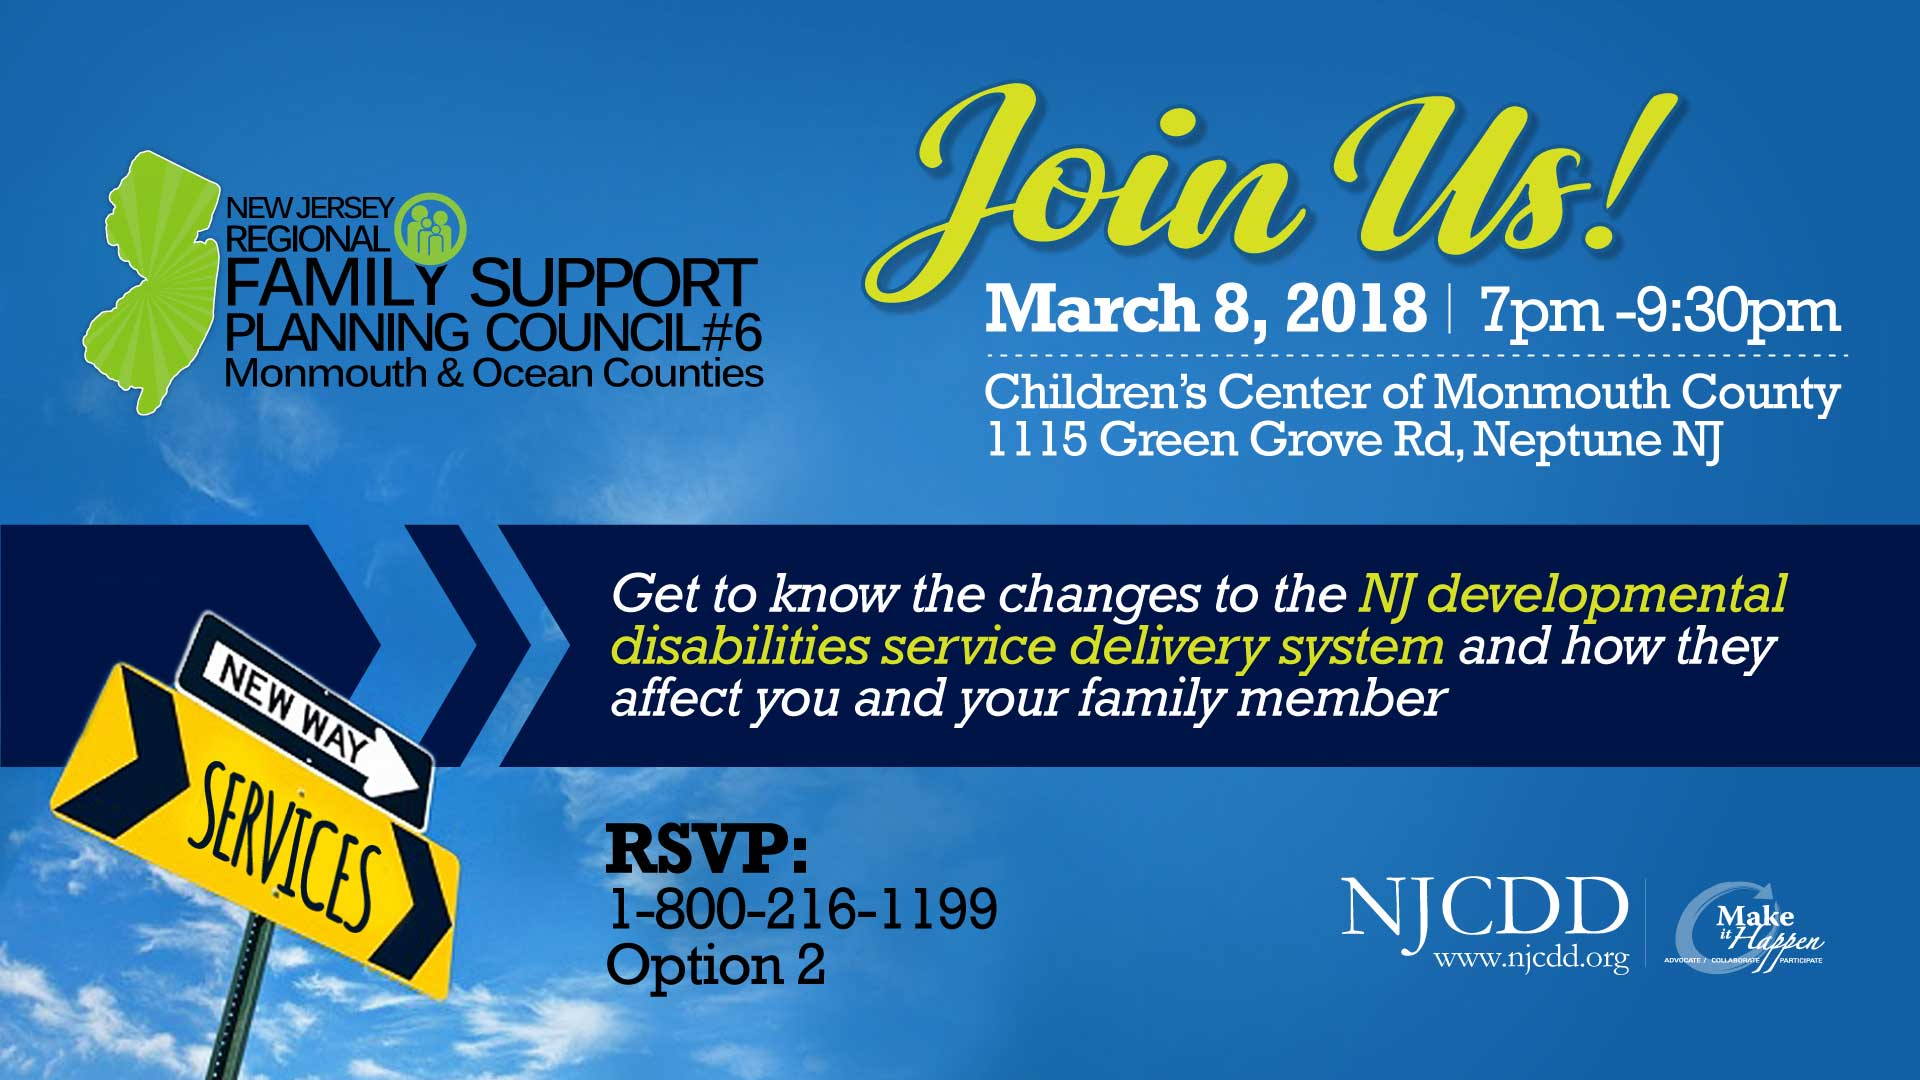 Regional Family Support Planning Council #6 Monmouth & Ocean Counties Join Us Get to know the changes to the NJ  developmental disabilities service delivery system  and how they affect you and your family member